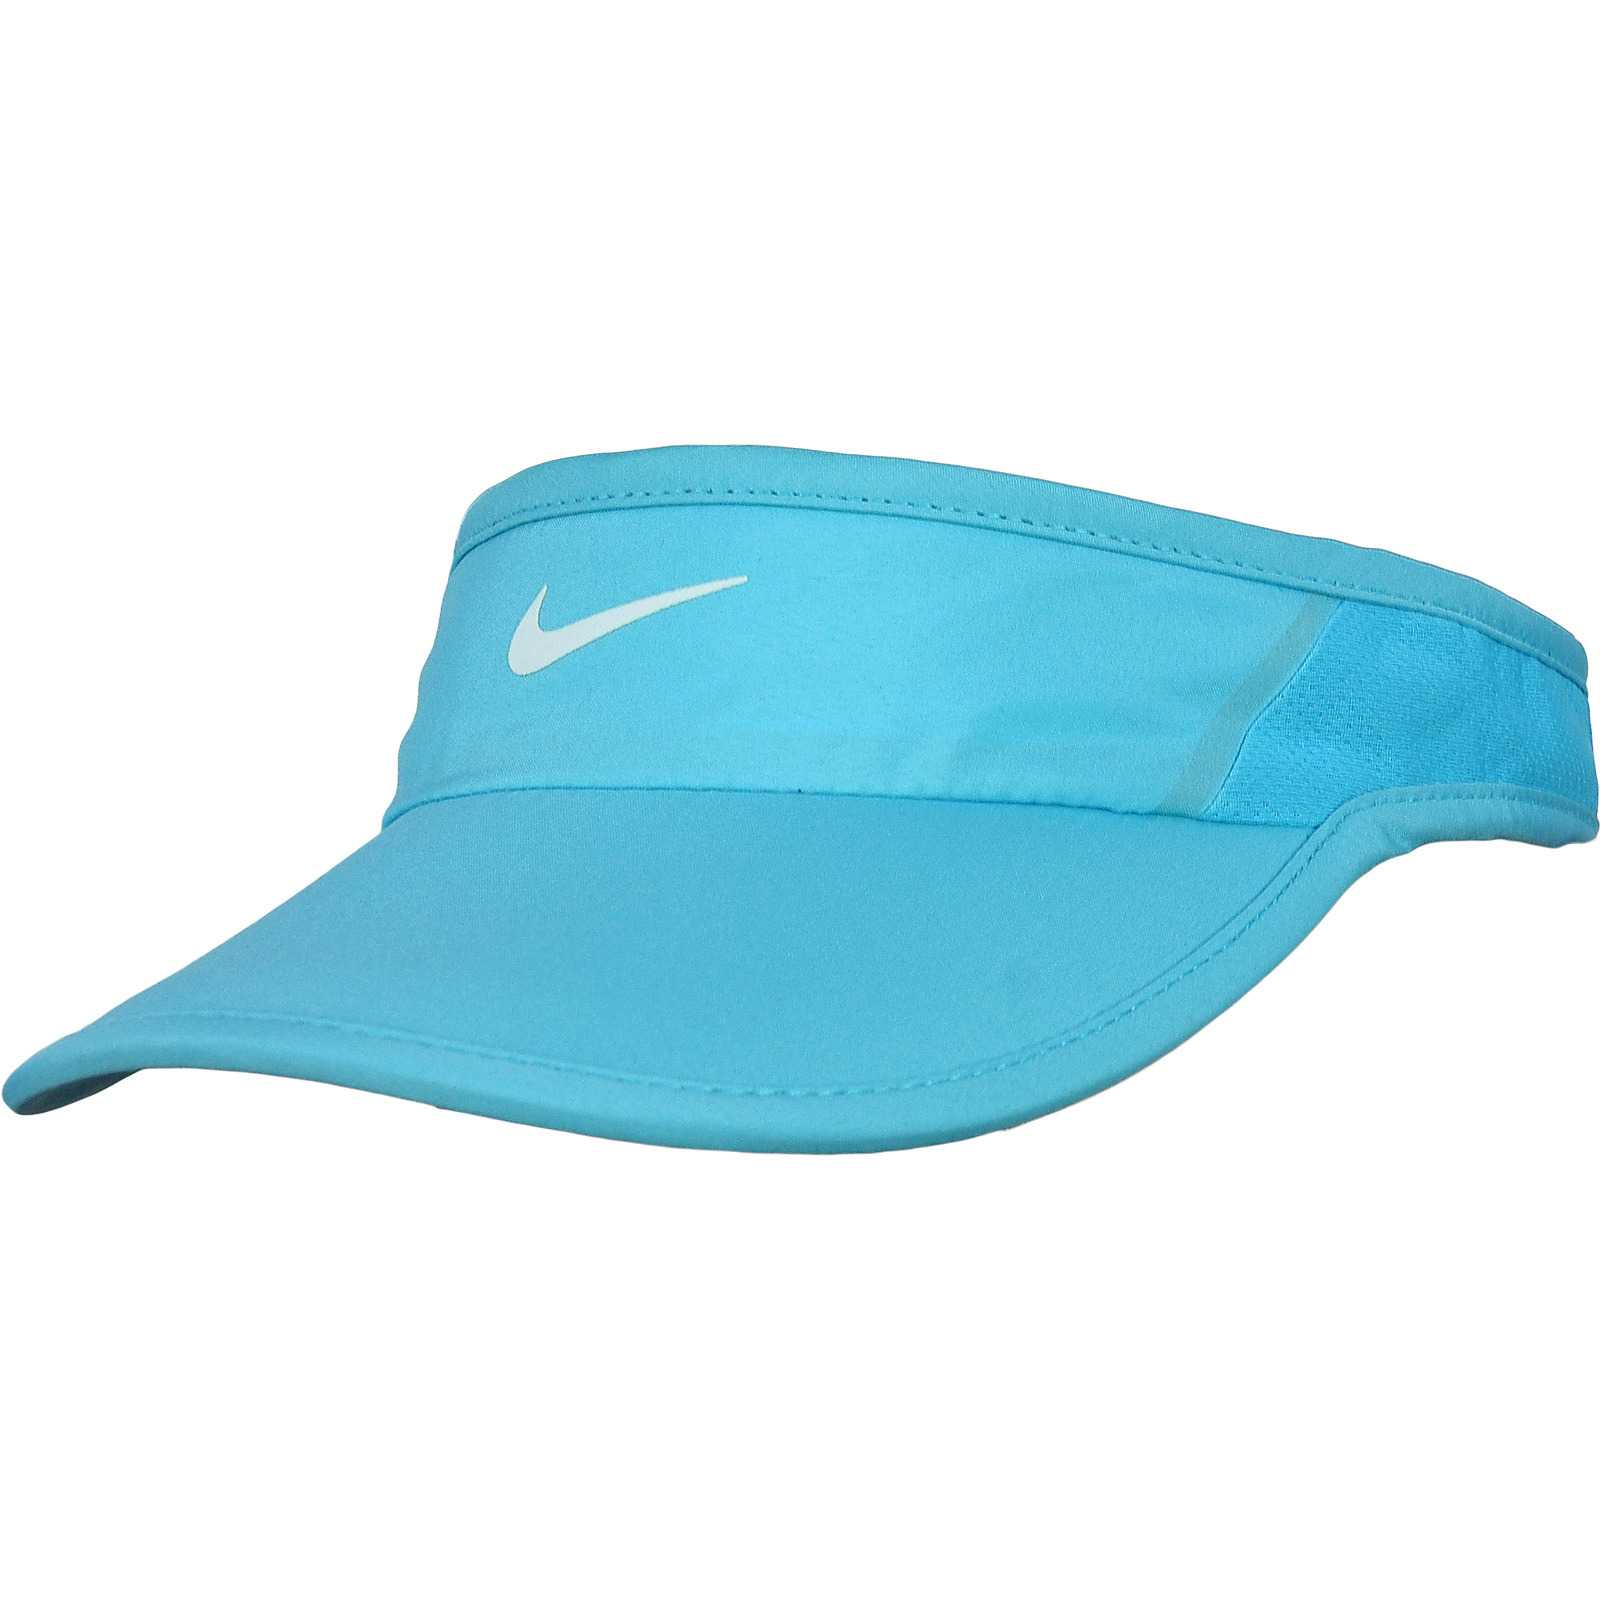 Sapca femei Nike Ws Feather Light Visor 613967-401